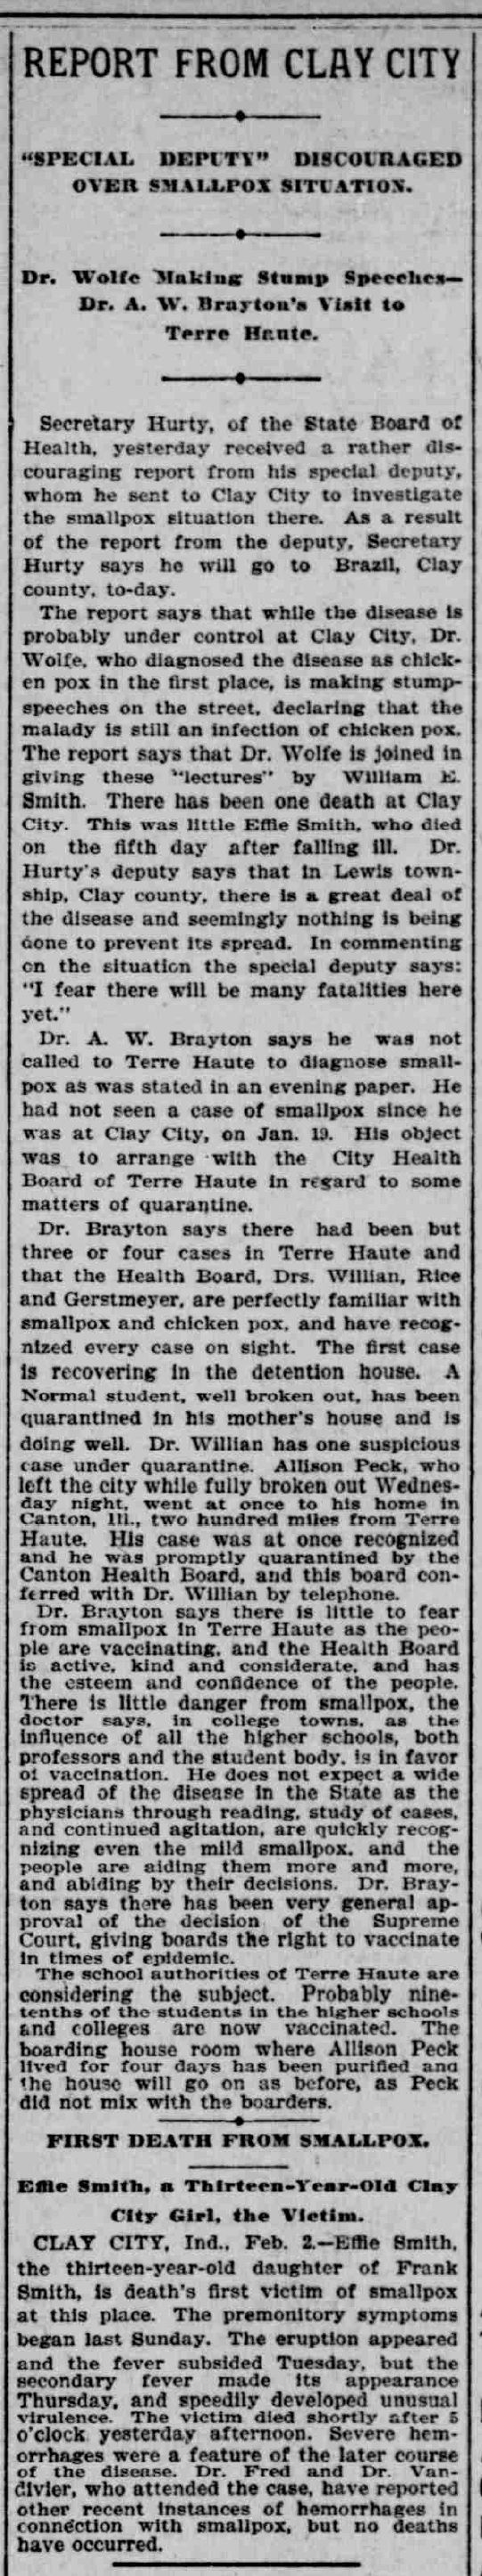 """""""Report From Clay City,"""" The Indianapolis Journal (Indianapolis, Indiana), 3 February 1900, p. 8, col. 6; digital image, Chronicling America (http://chroniclingamerica.loc.gov/ : accessed 6 December 2014)."""